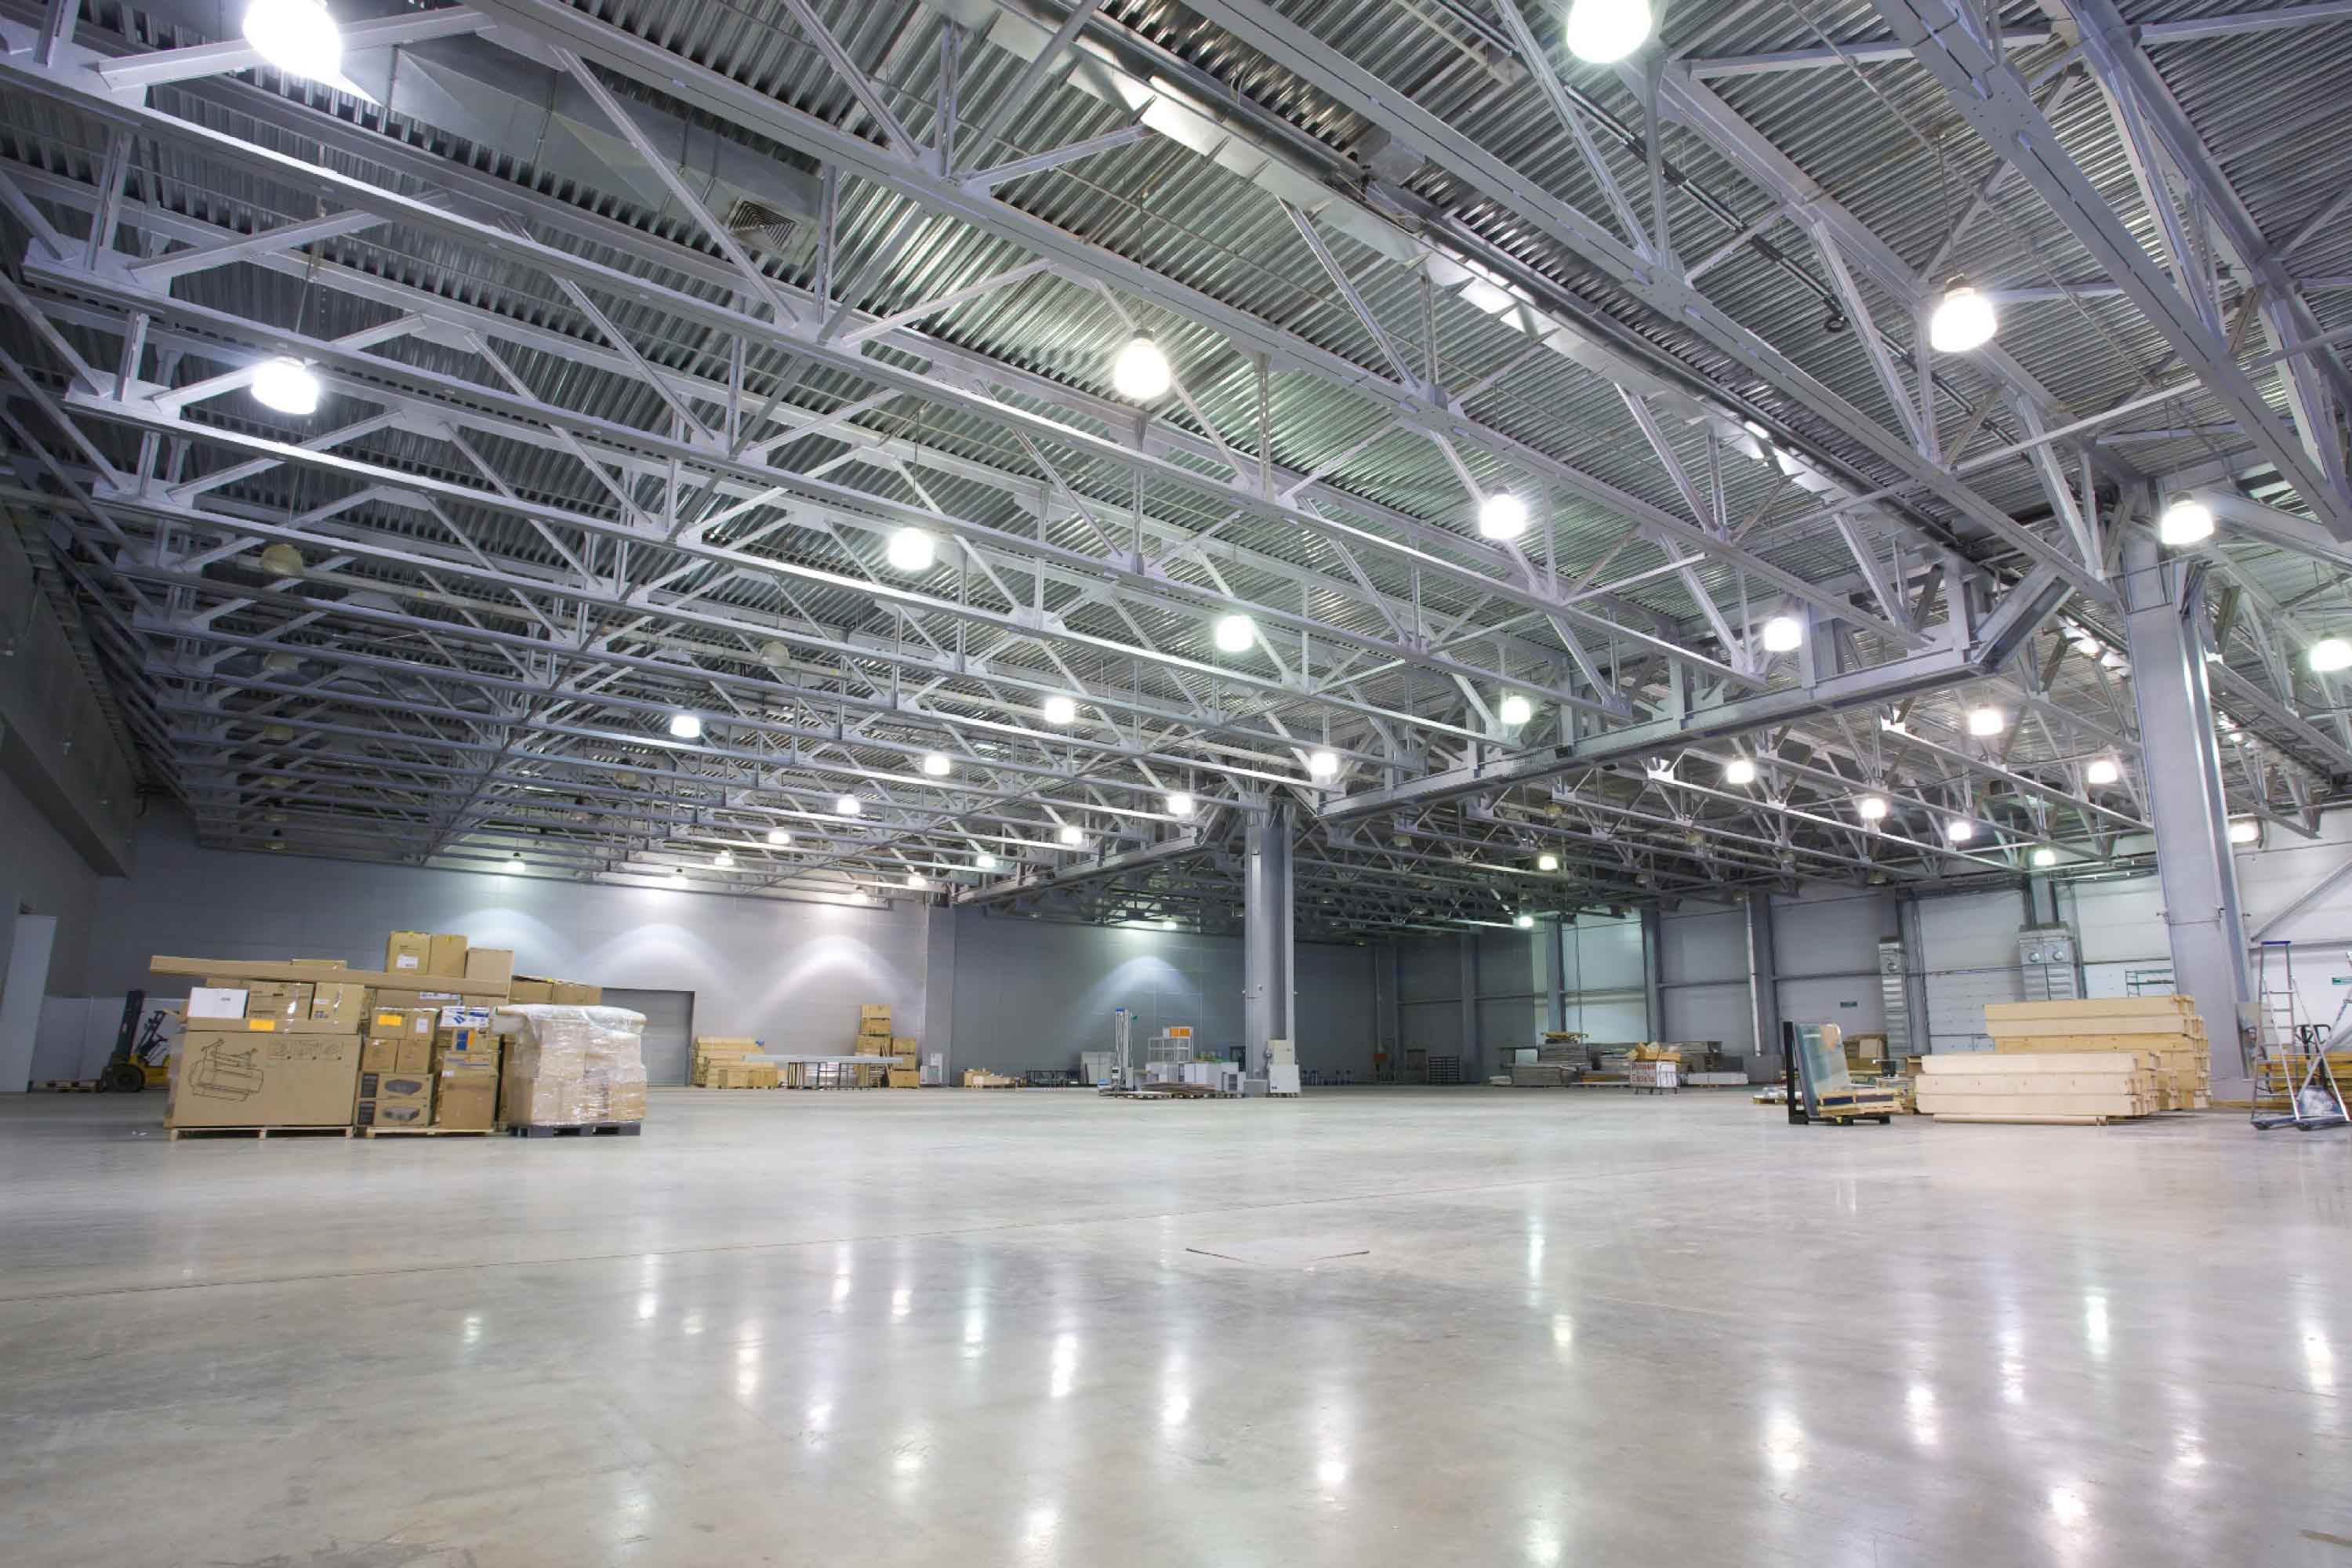 Warehouse with Smart Lighting by Mymesh